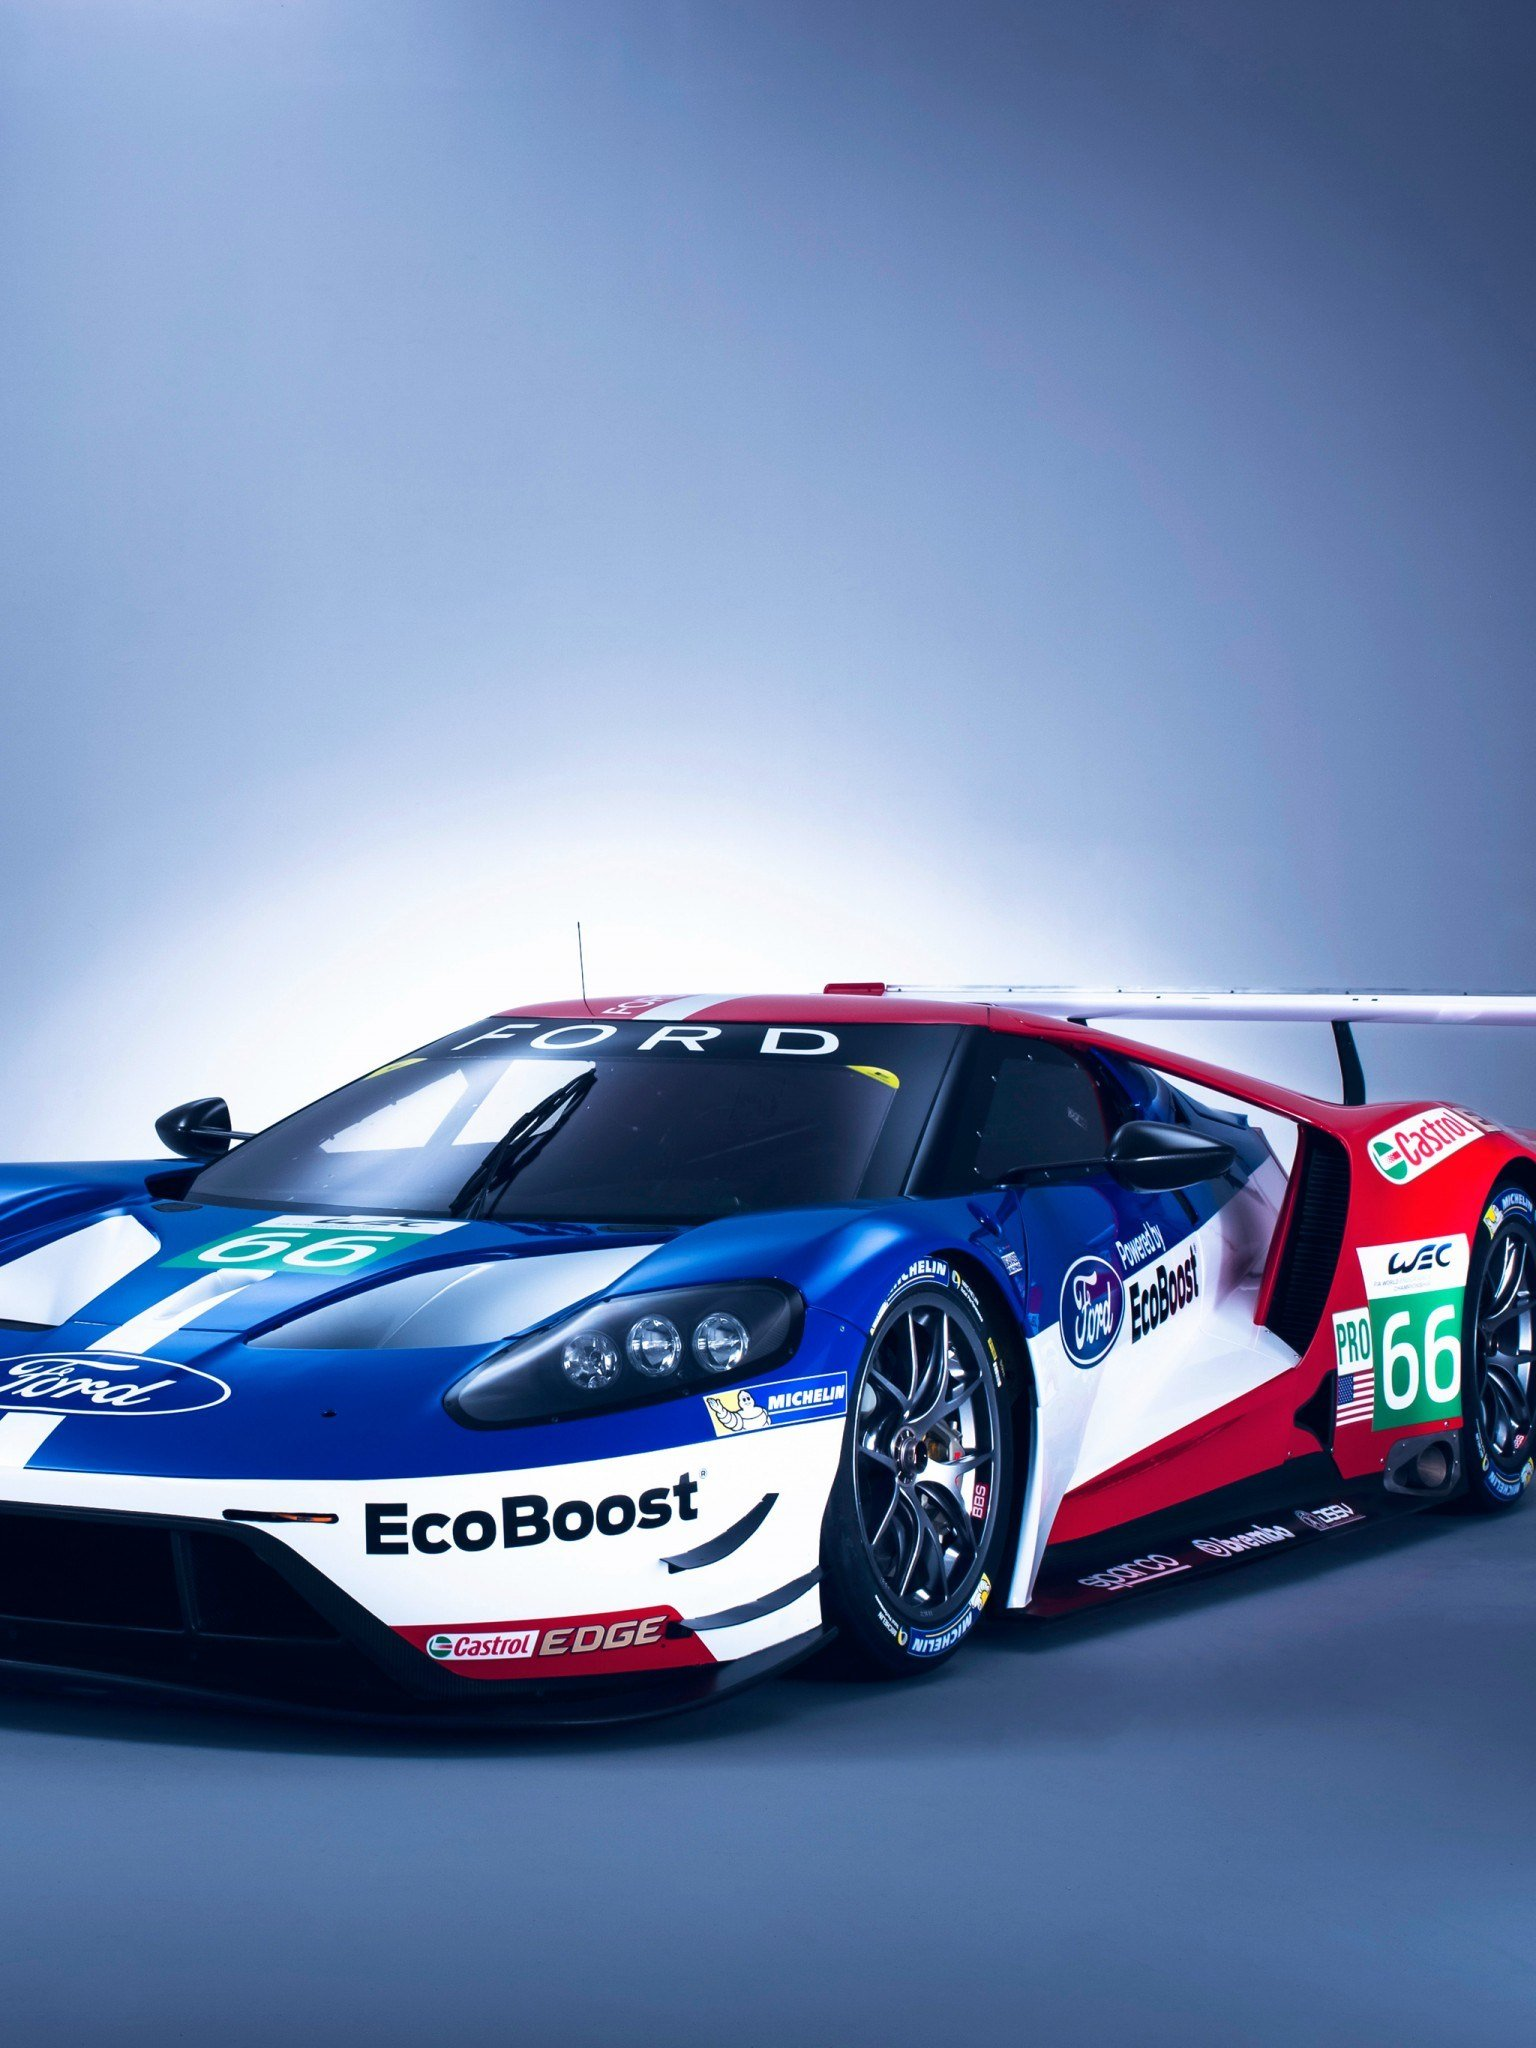 New Wallpaper Ford Gt Le Mans Ford Cars 2016 Cars On This Month